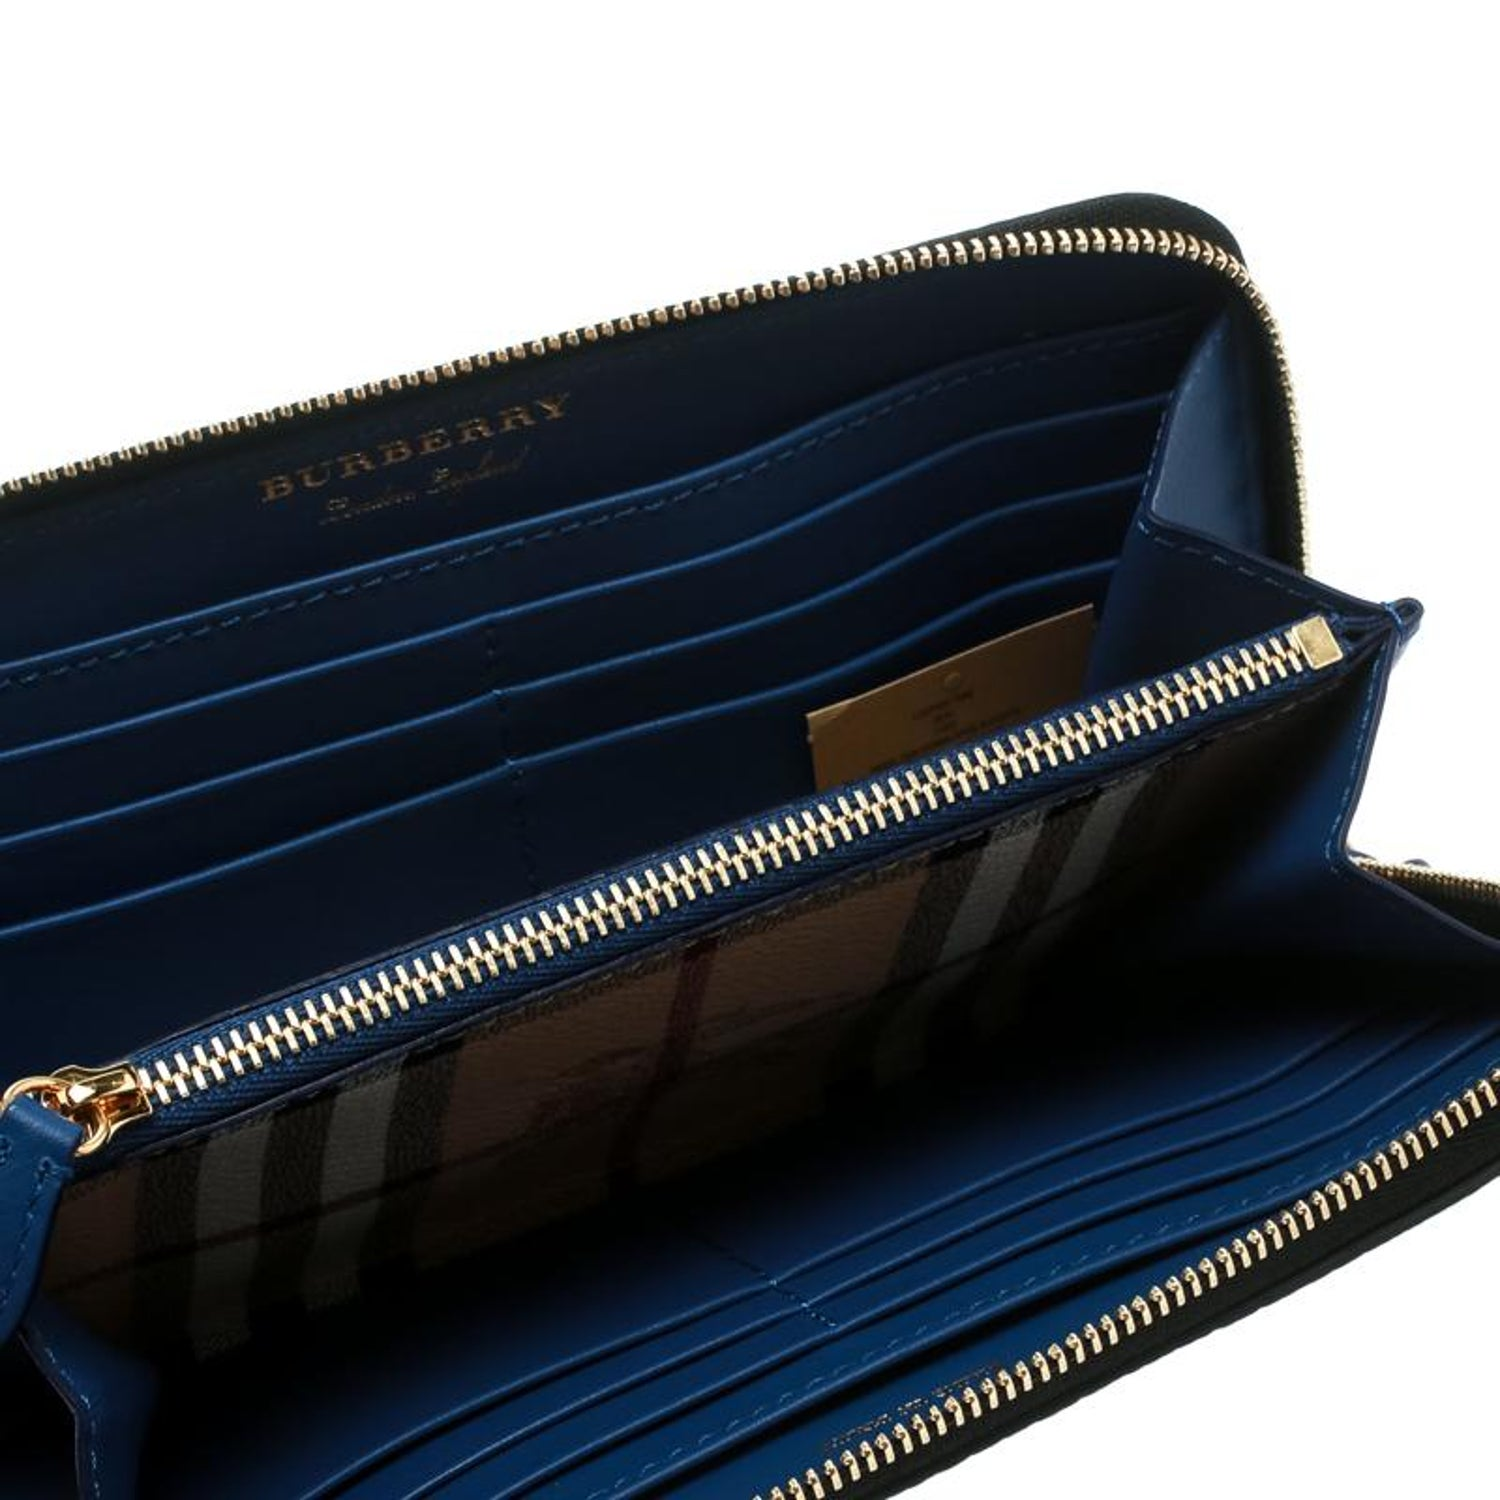 401db0645d3 Burberry Monochrome Check Leather Creature Appliqué Zip Around Wallet For  Sale at 1stdibs